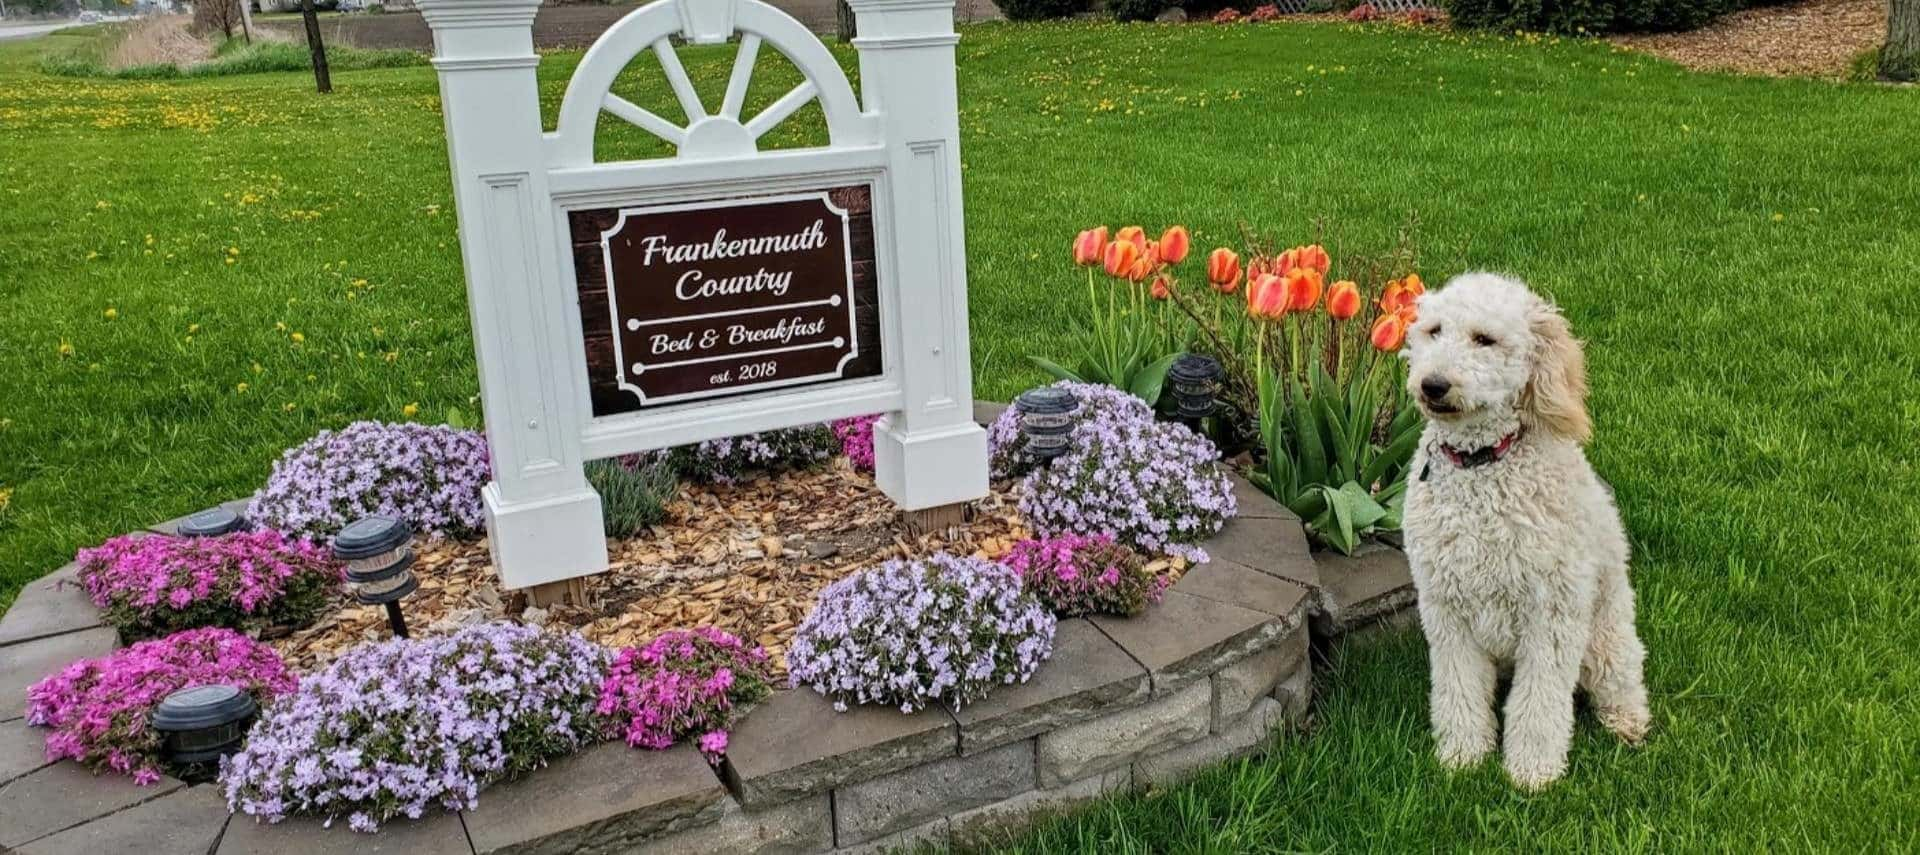 Welcome sign for the property surrounded by orange, purple, and pink flowers in raised stone garden bed surrounded by green grass with white dog posing near by